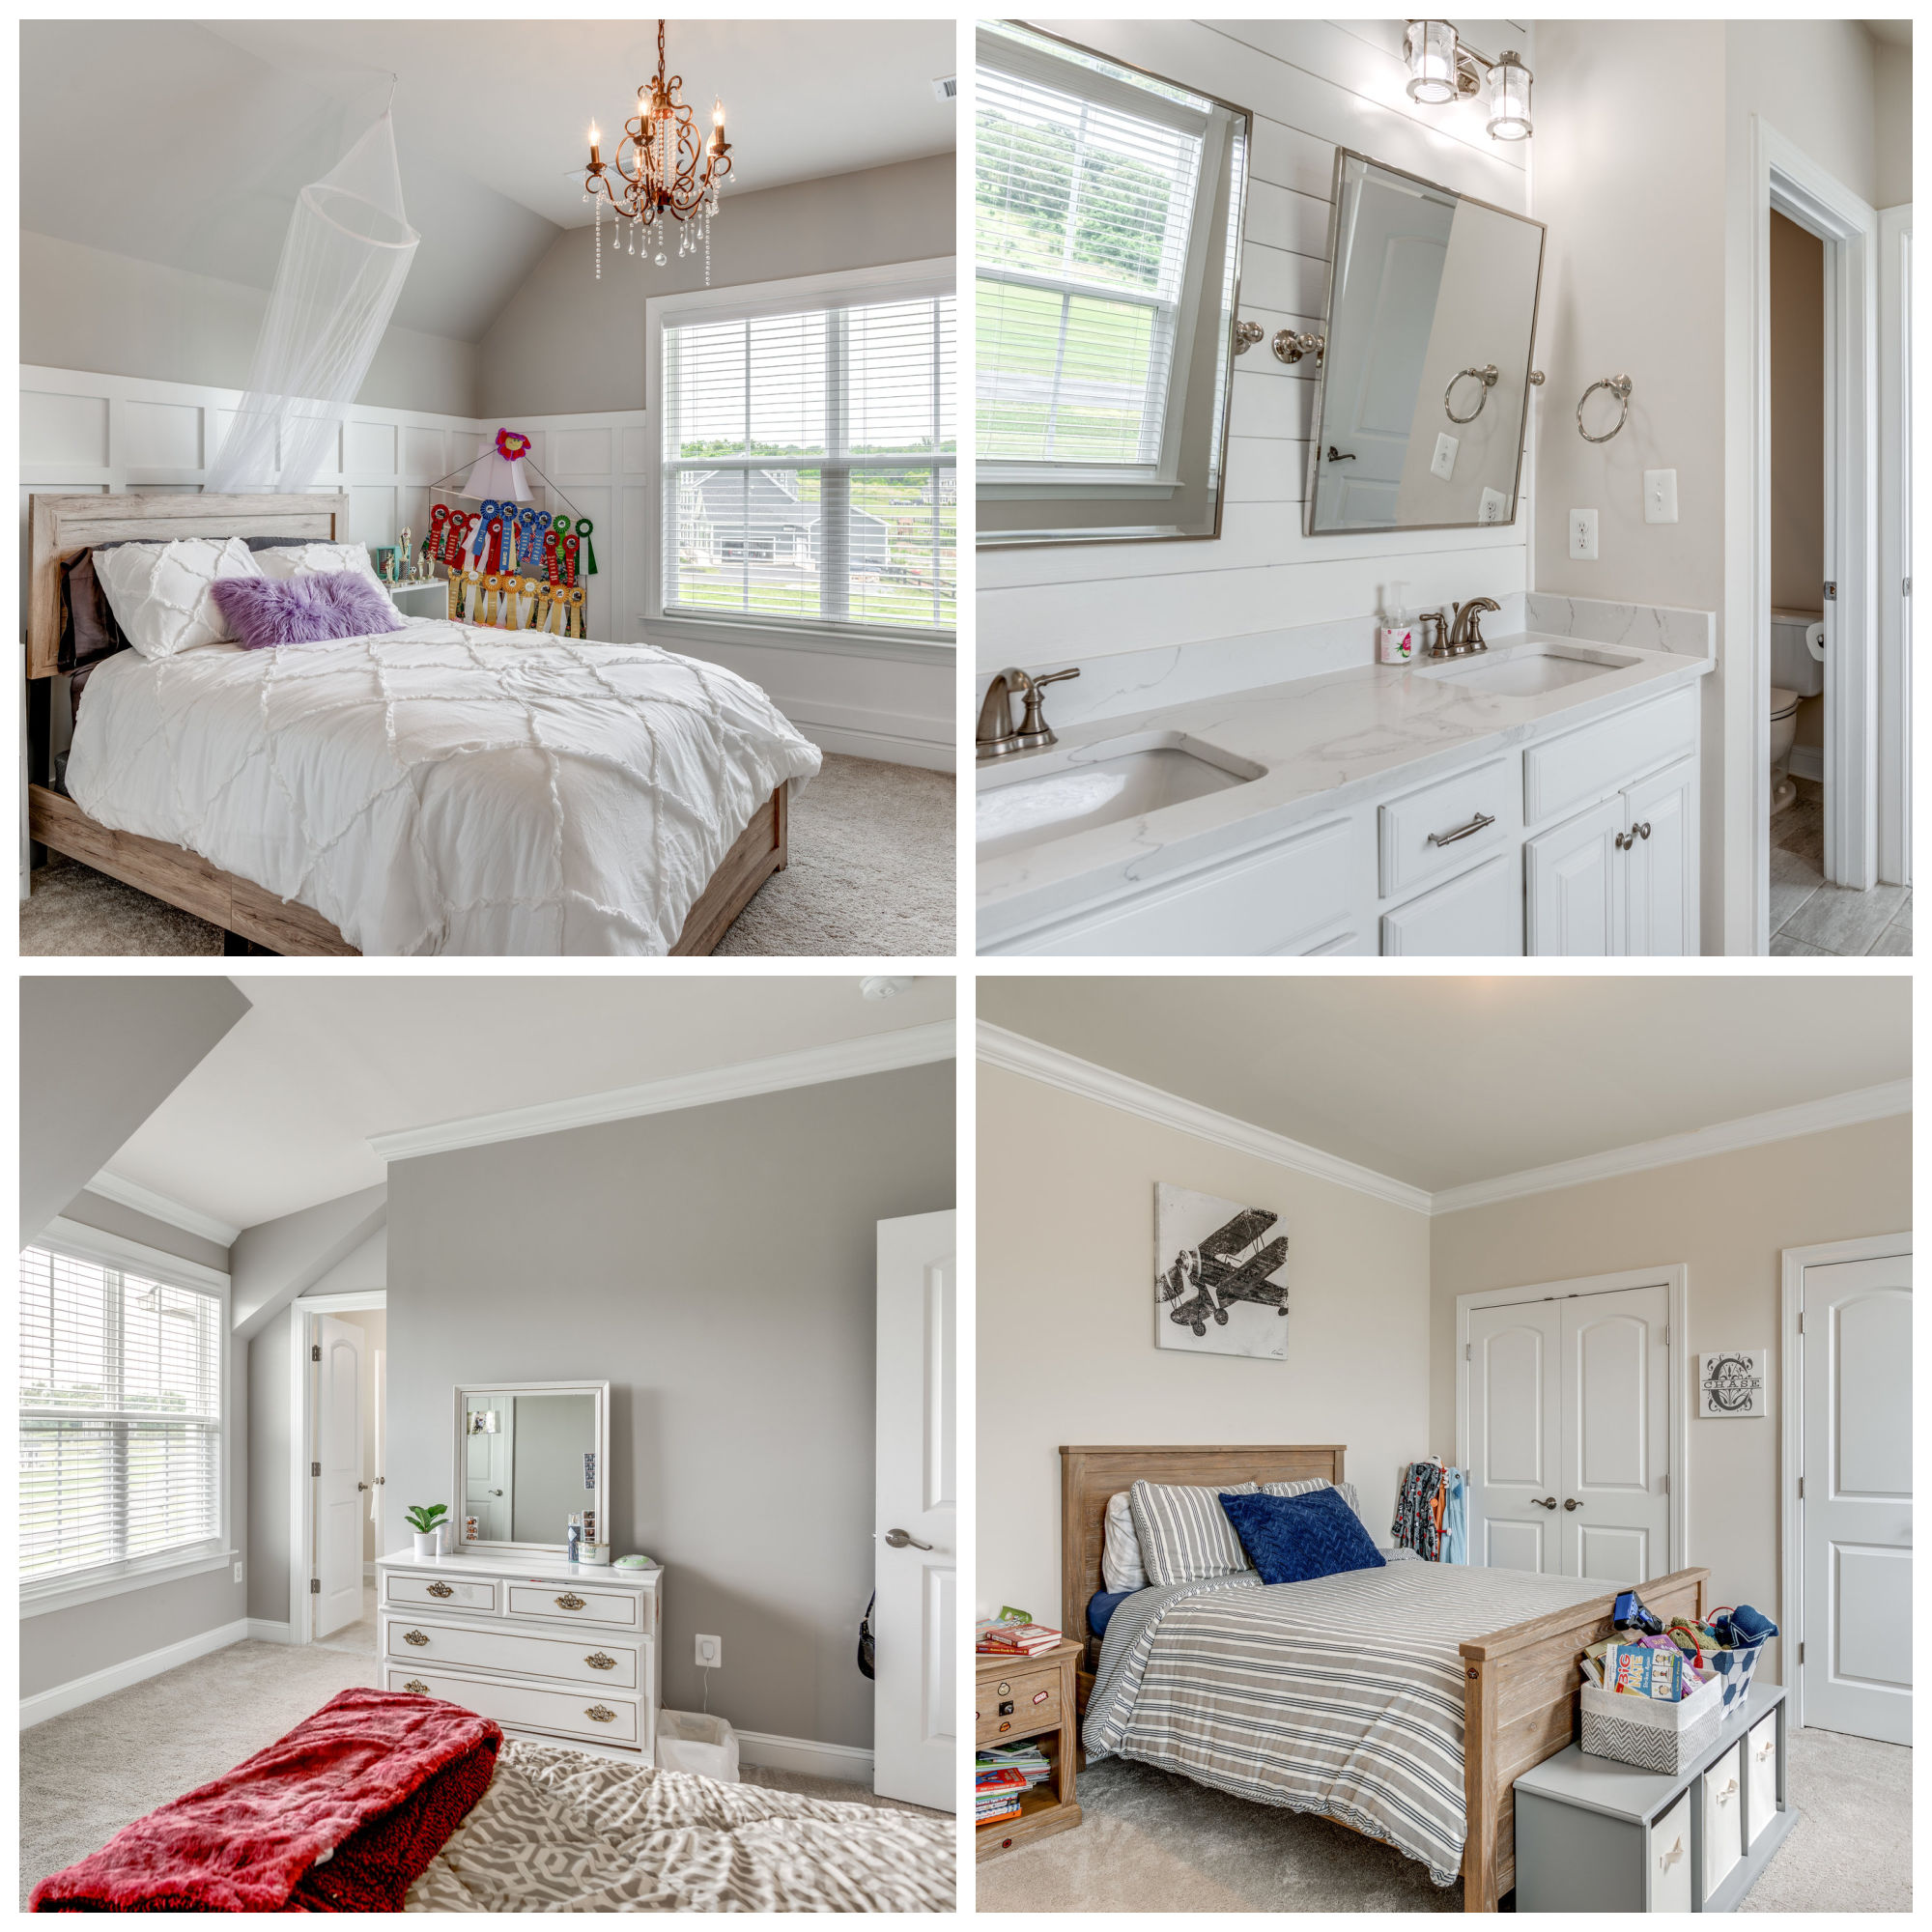 35664 Sweet Branch Ct, Purcellville- Additional Bedrooms and Bathrooms